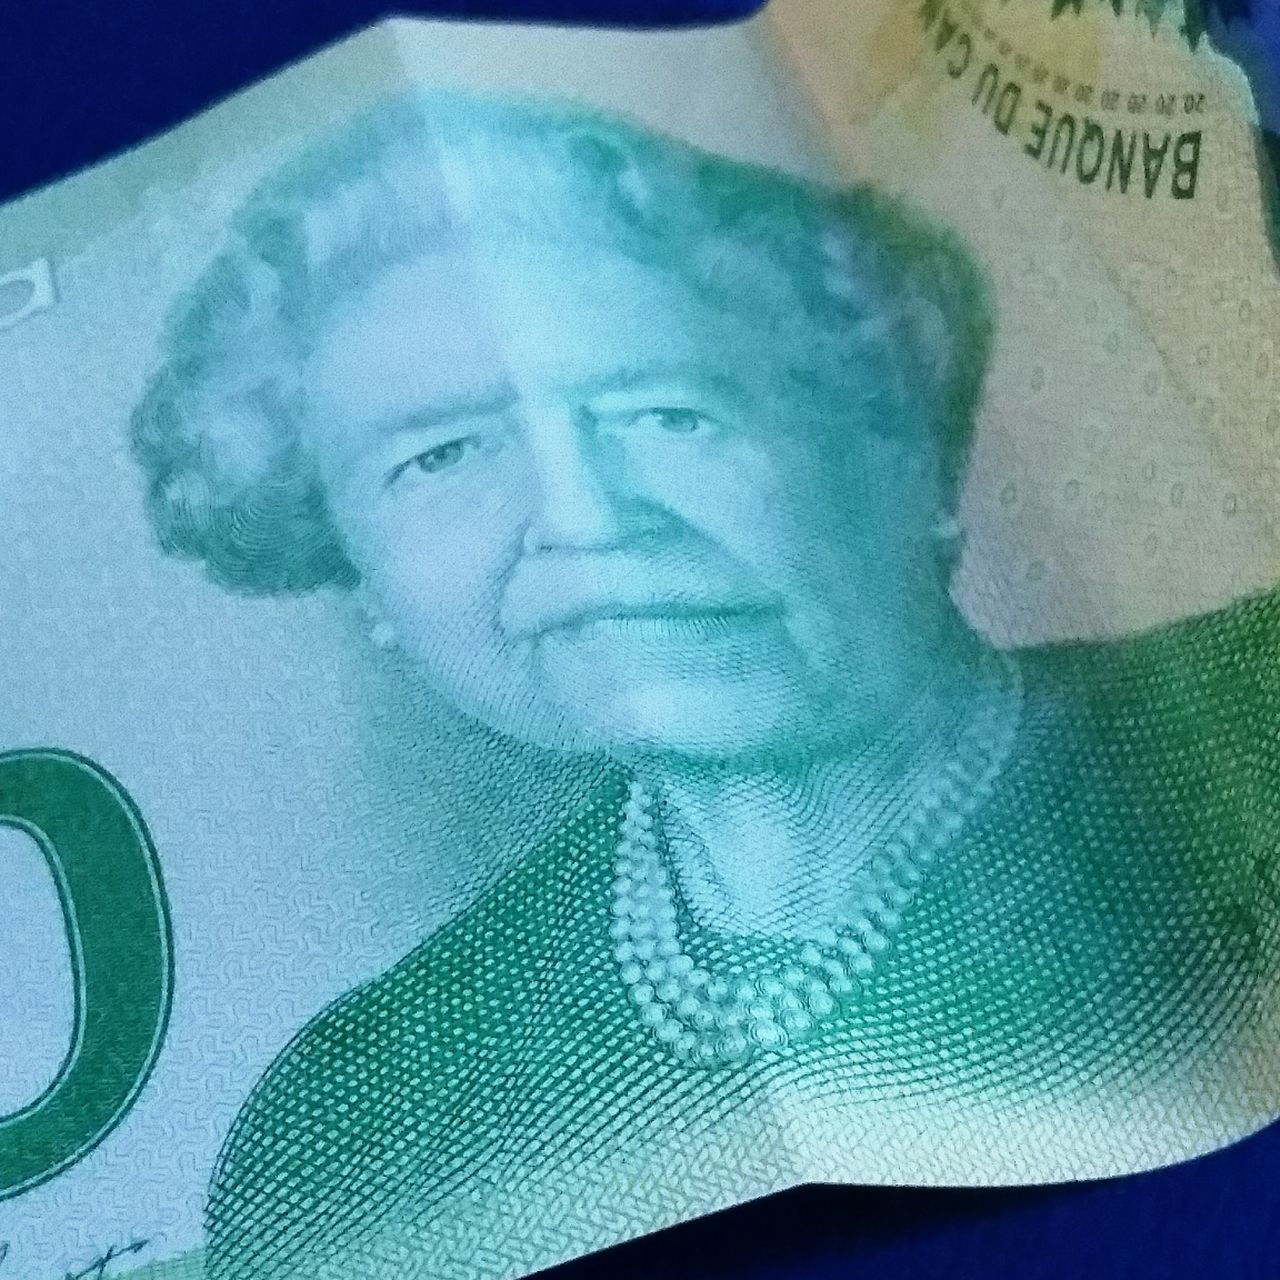 Showcase March One Queen Two Faces Sad Face Queen QEII Drama Queen  Canadian Dollars